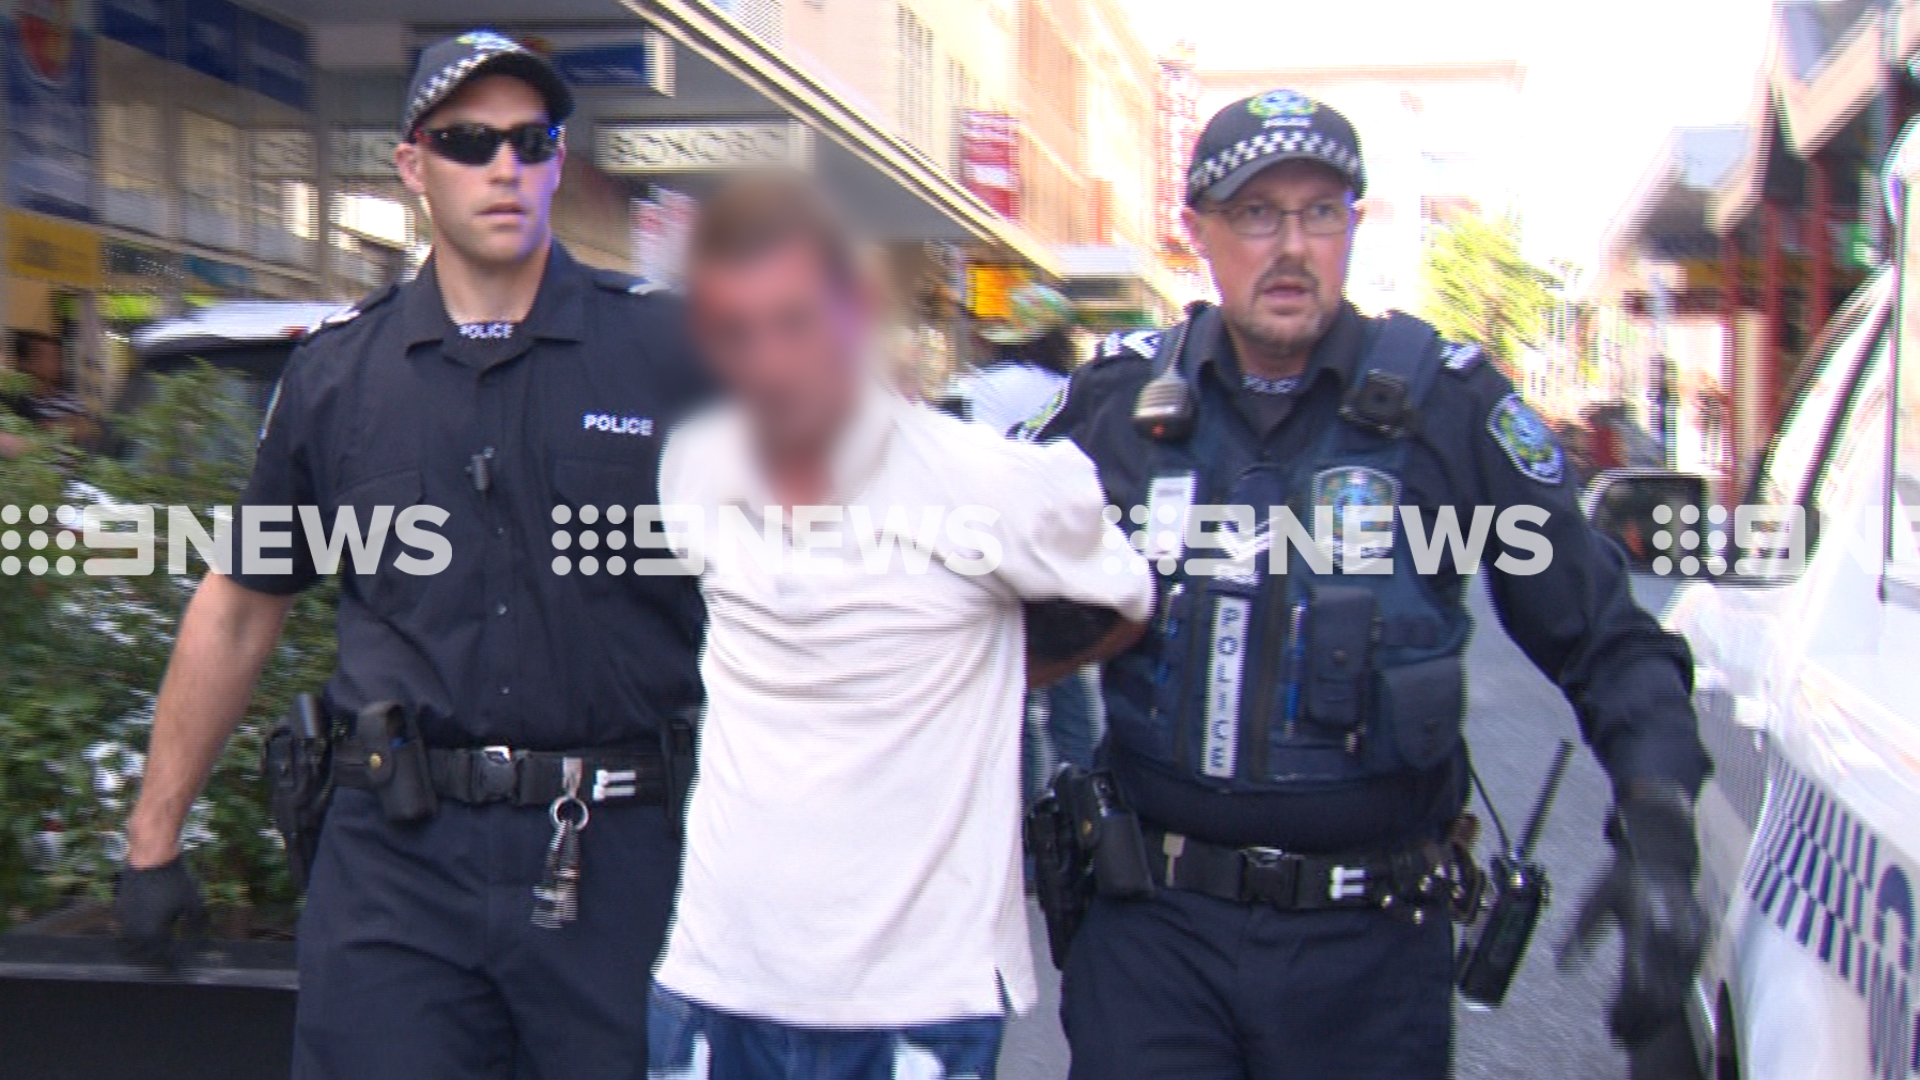 A 38-year-old man has been arrested after allegedly carrying a sword through Adelaide's CBD. (9NEWS)